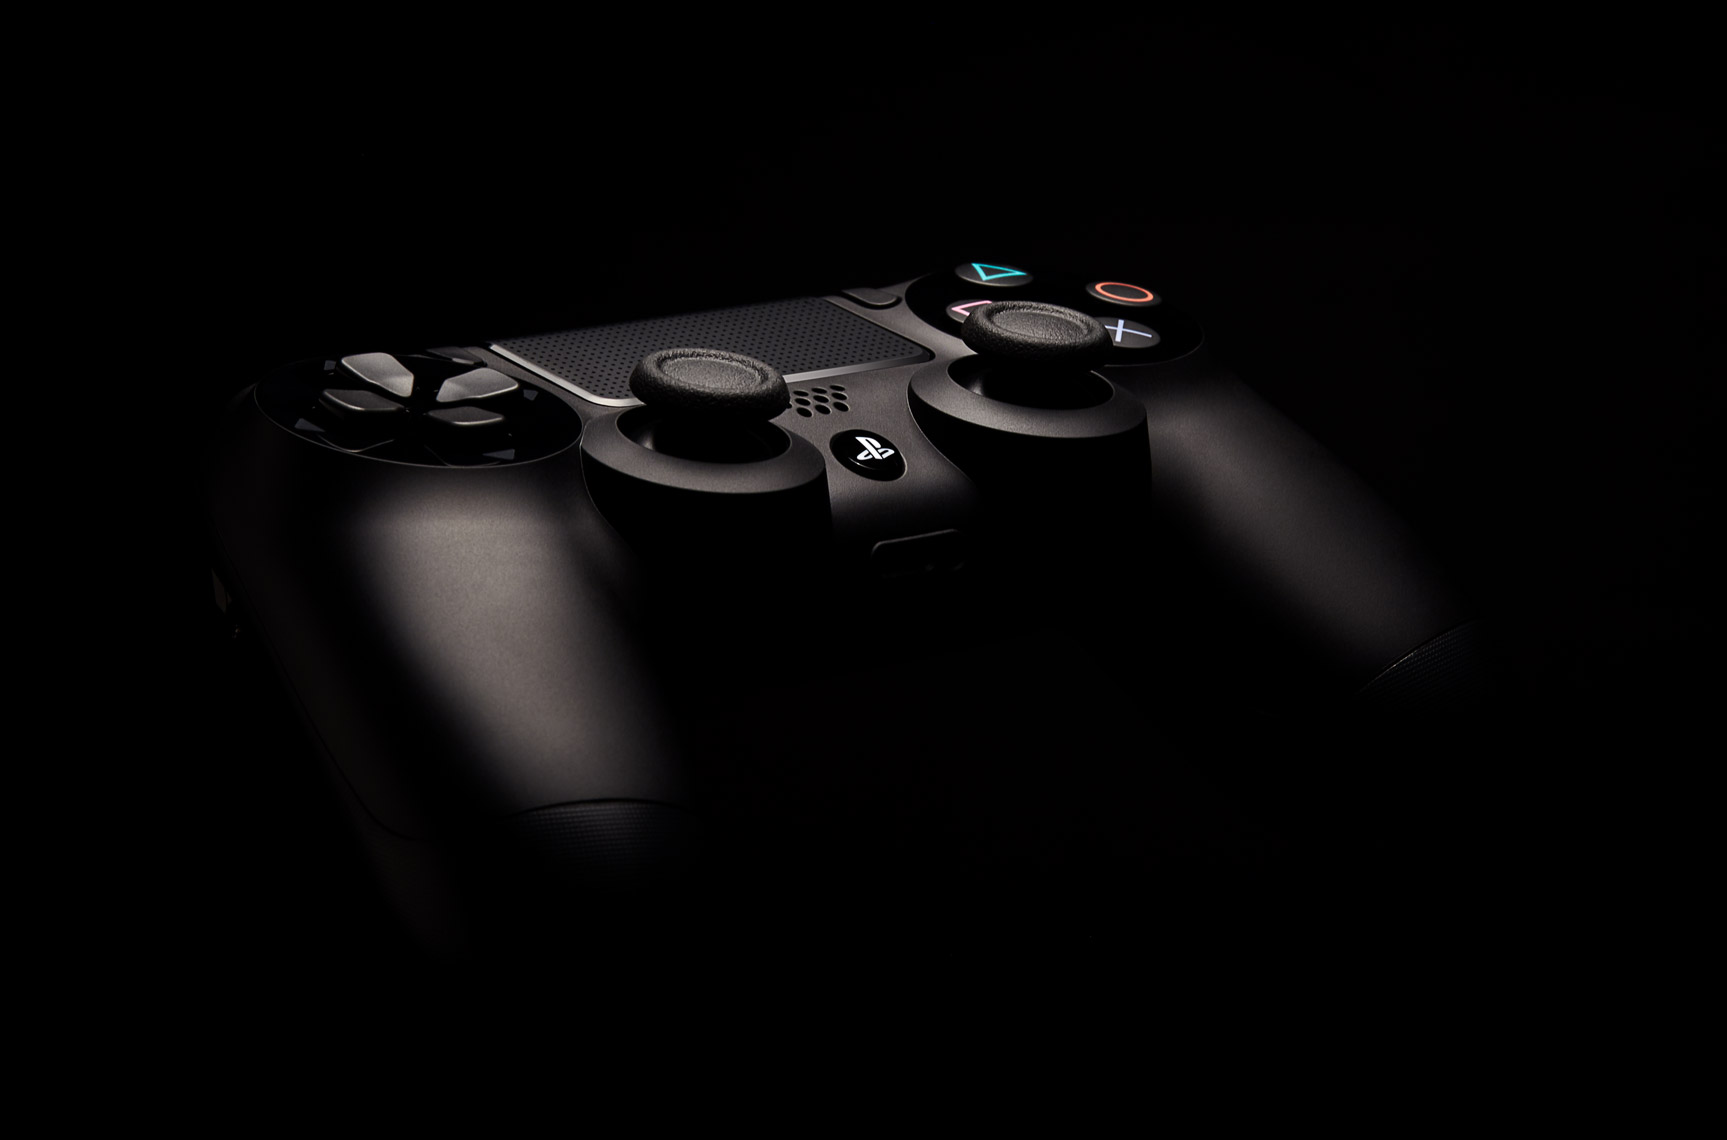 Product Photography Gadgets Sony Playstation 4 Dual Shock Controller Floating in Space Denver